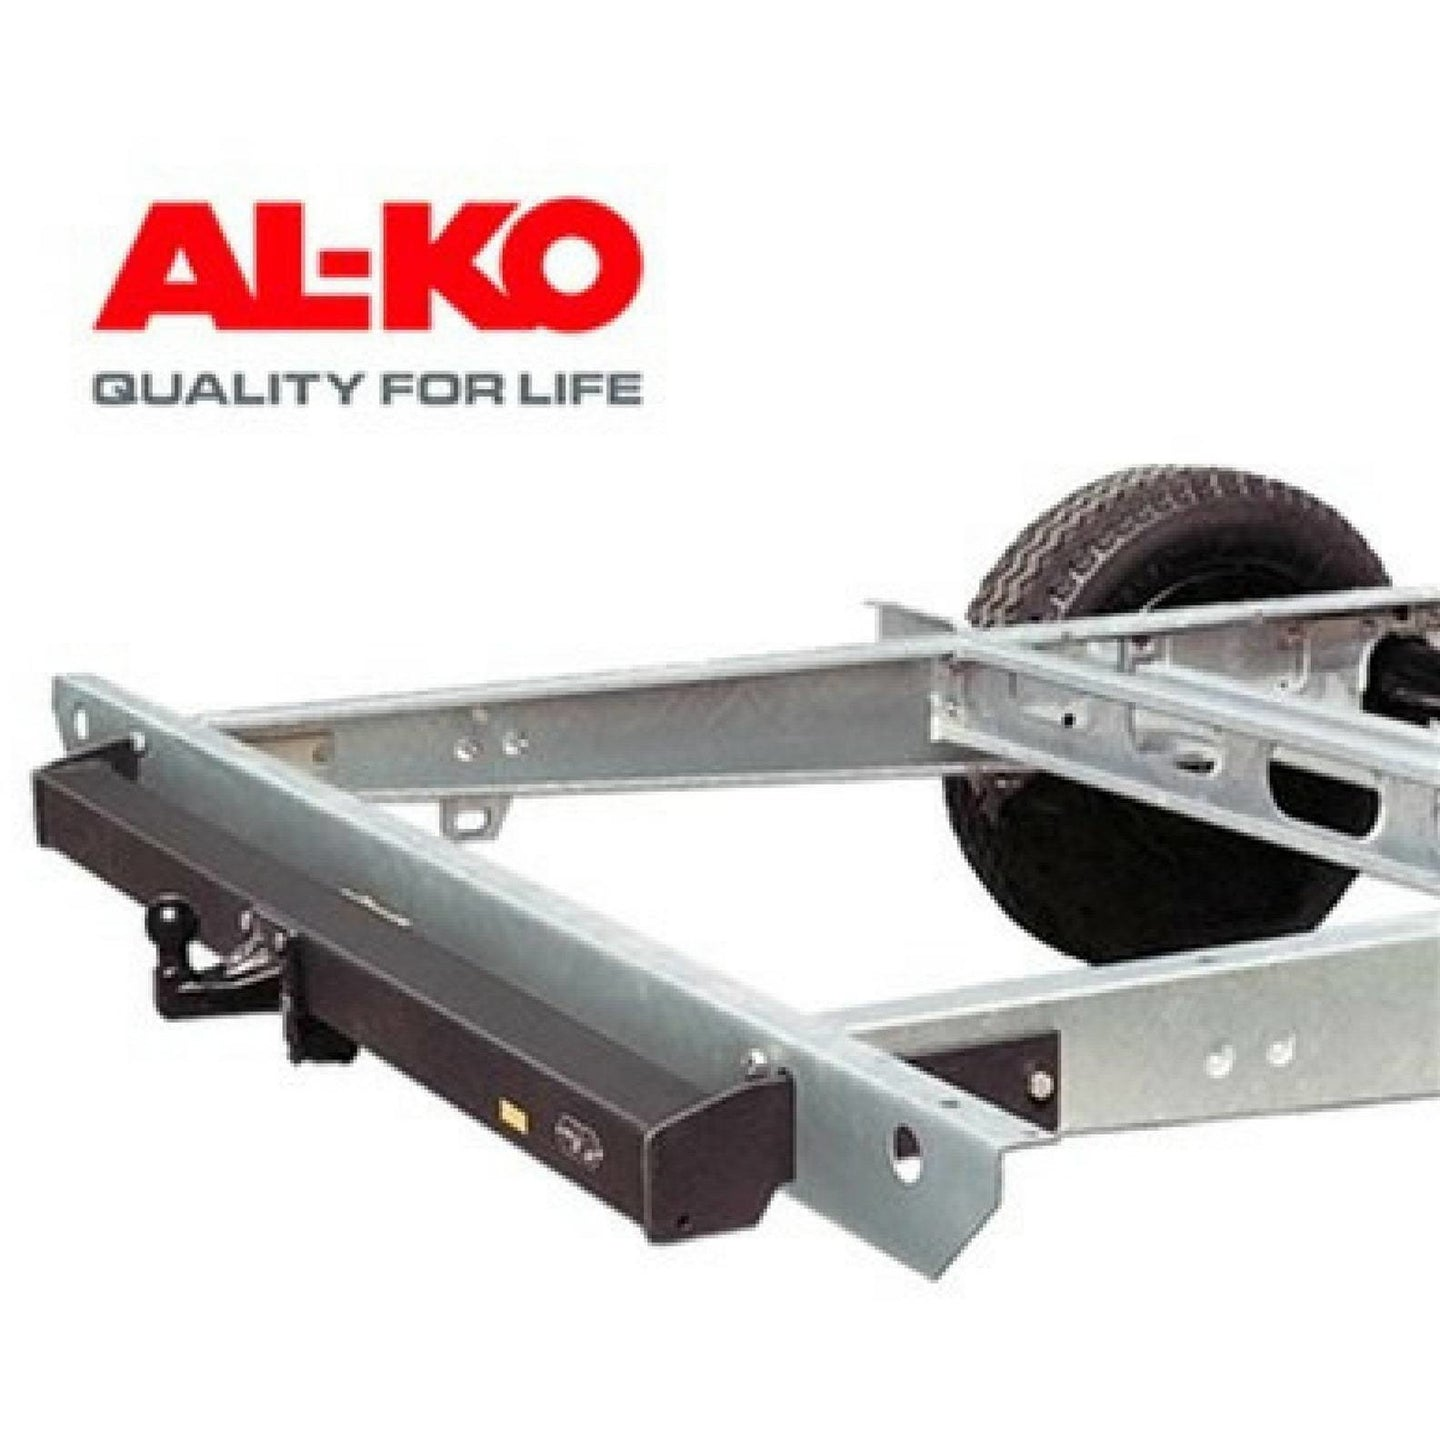 ALKO Towbar Assembly (1620382) - Quality Caravan Awnings